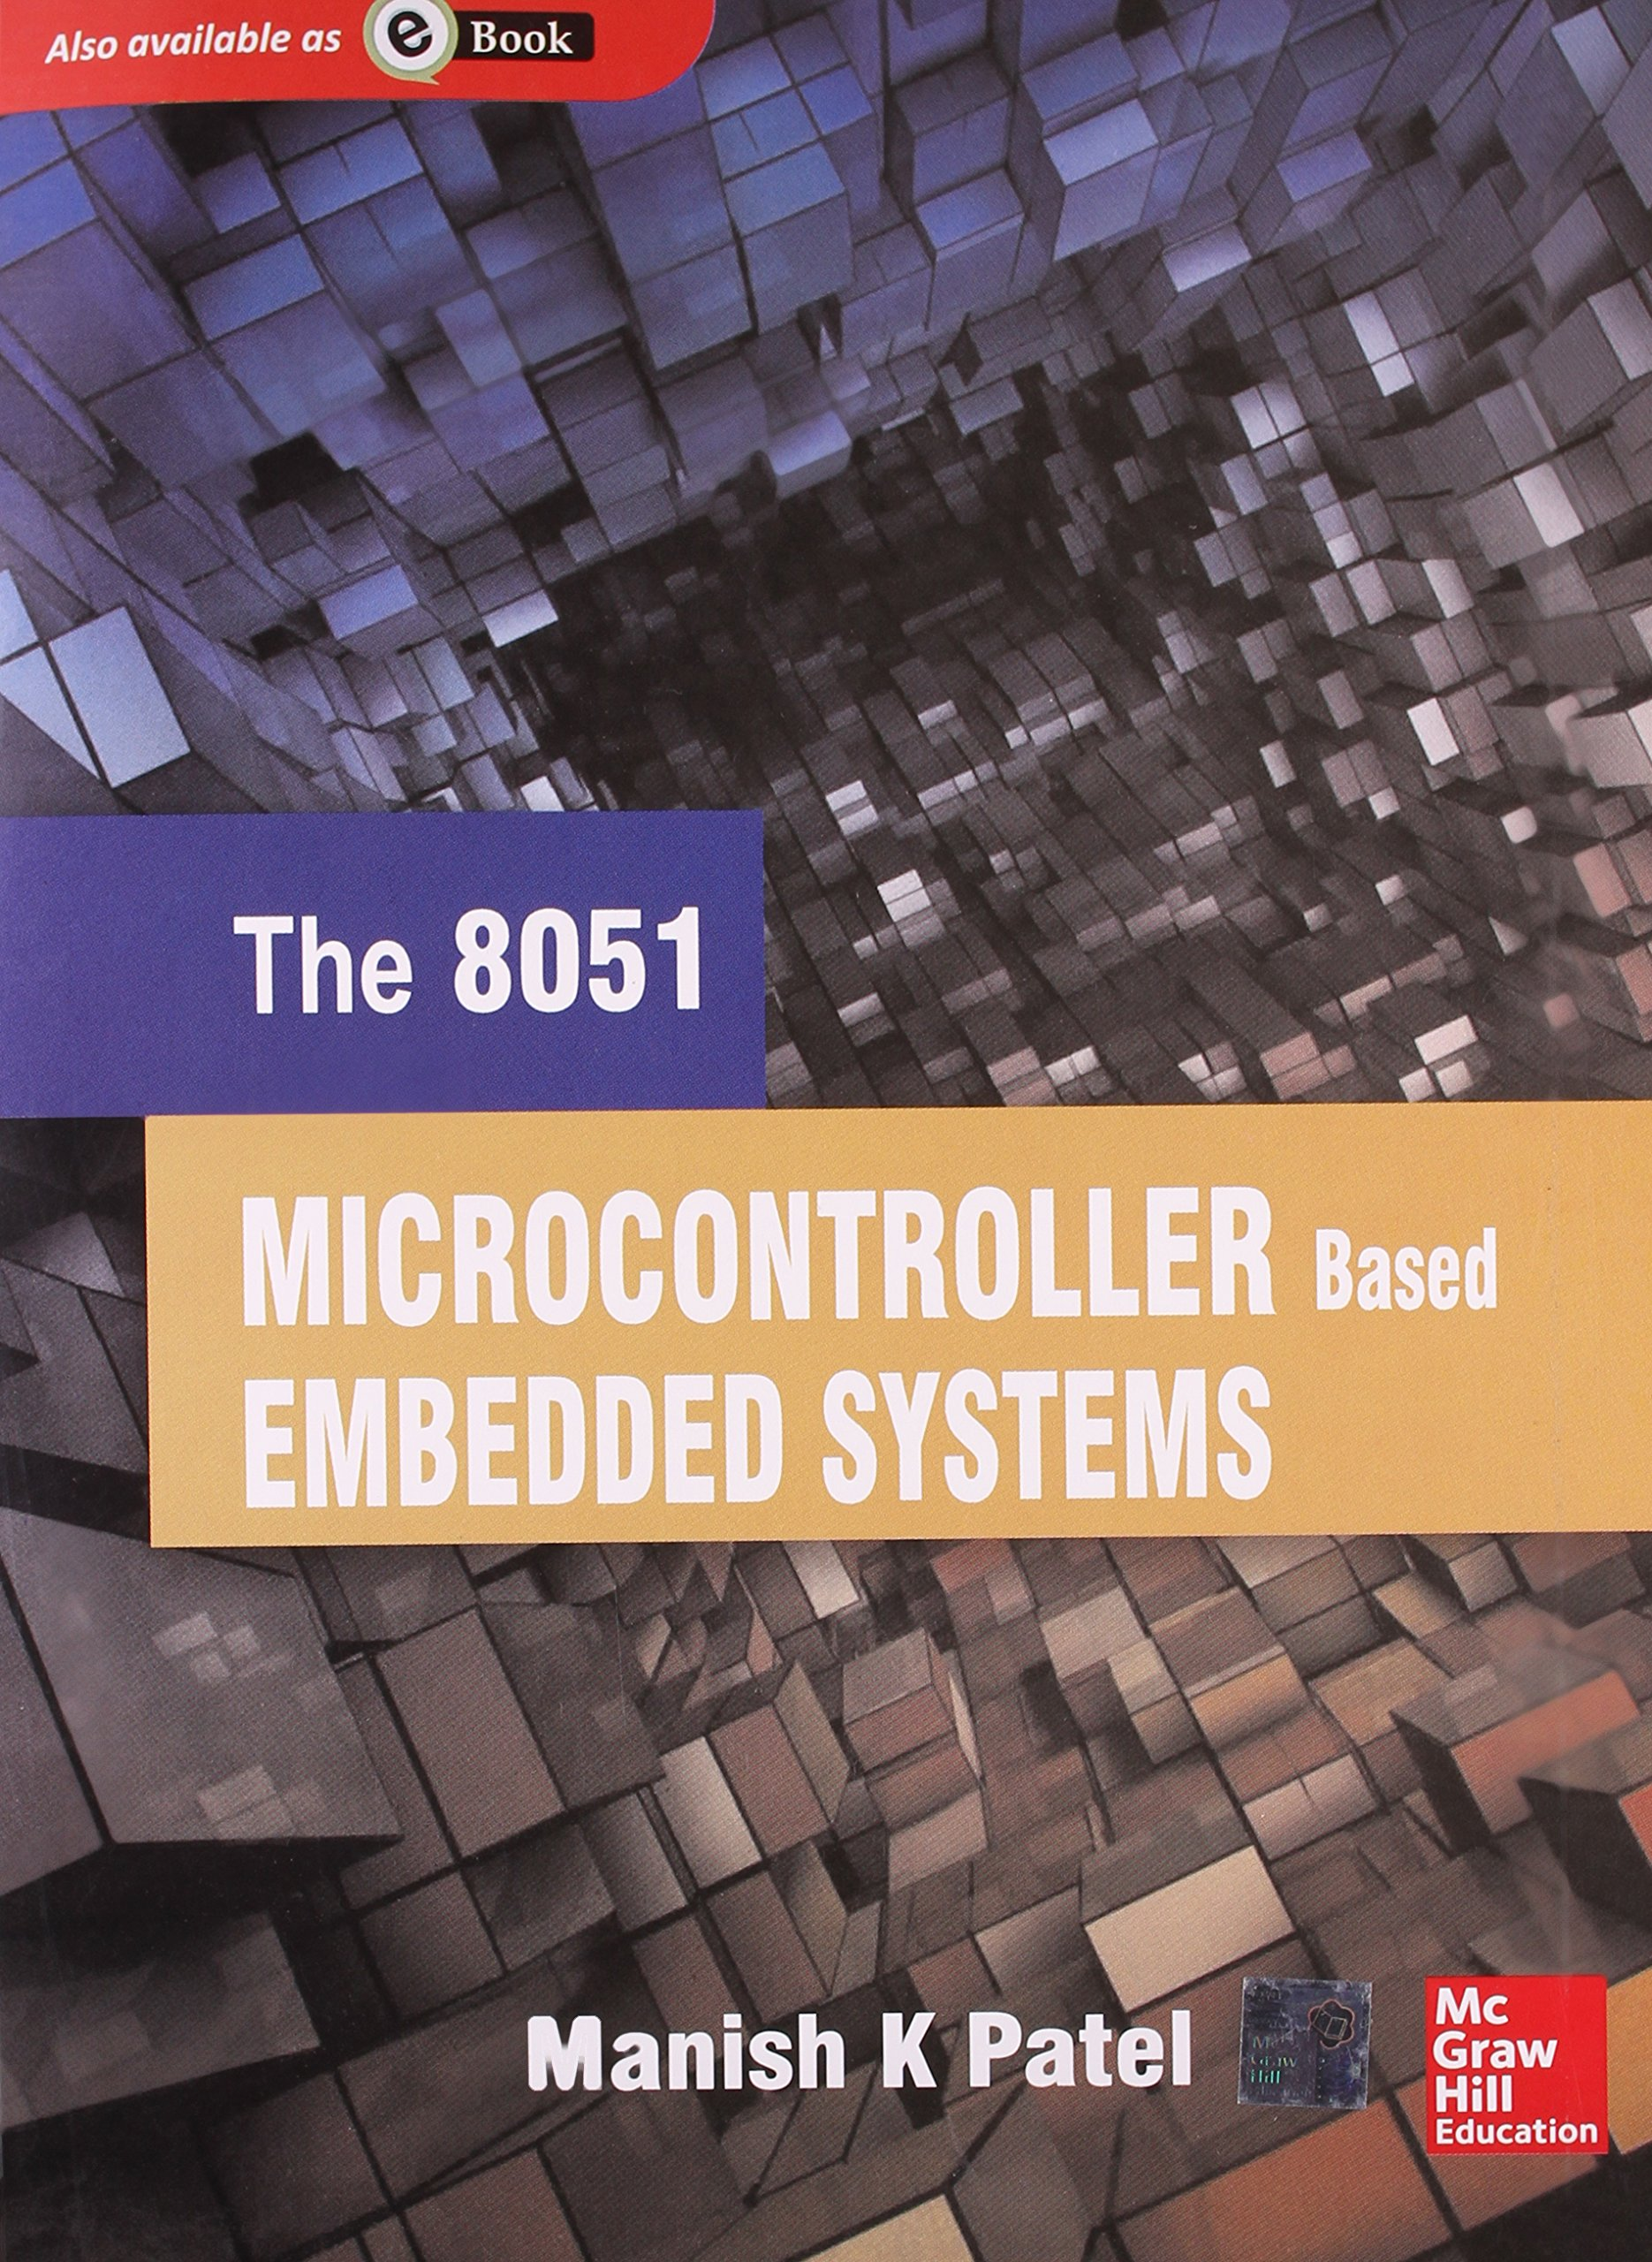 The 8051 Microcontroller Based Embedded Systems Manish K Patel Interfacing Adc To 9789332901254 Books